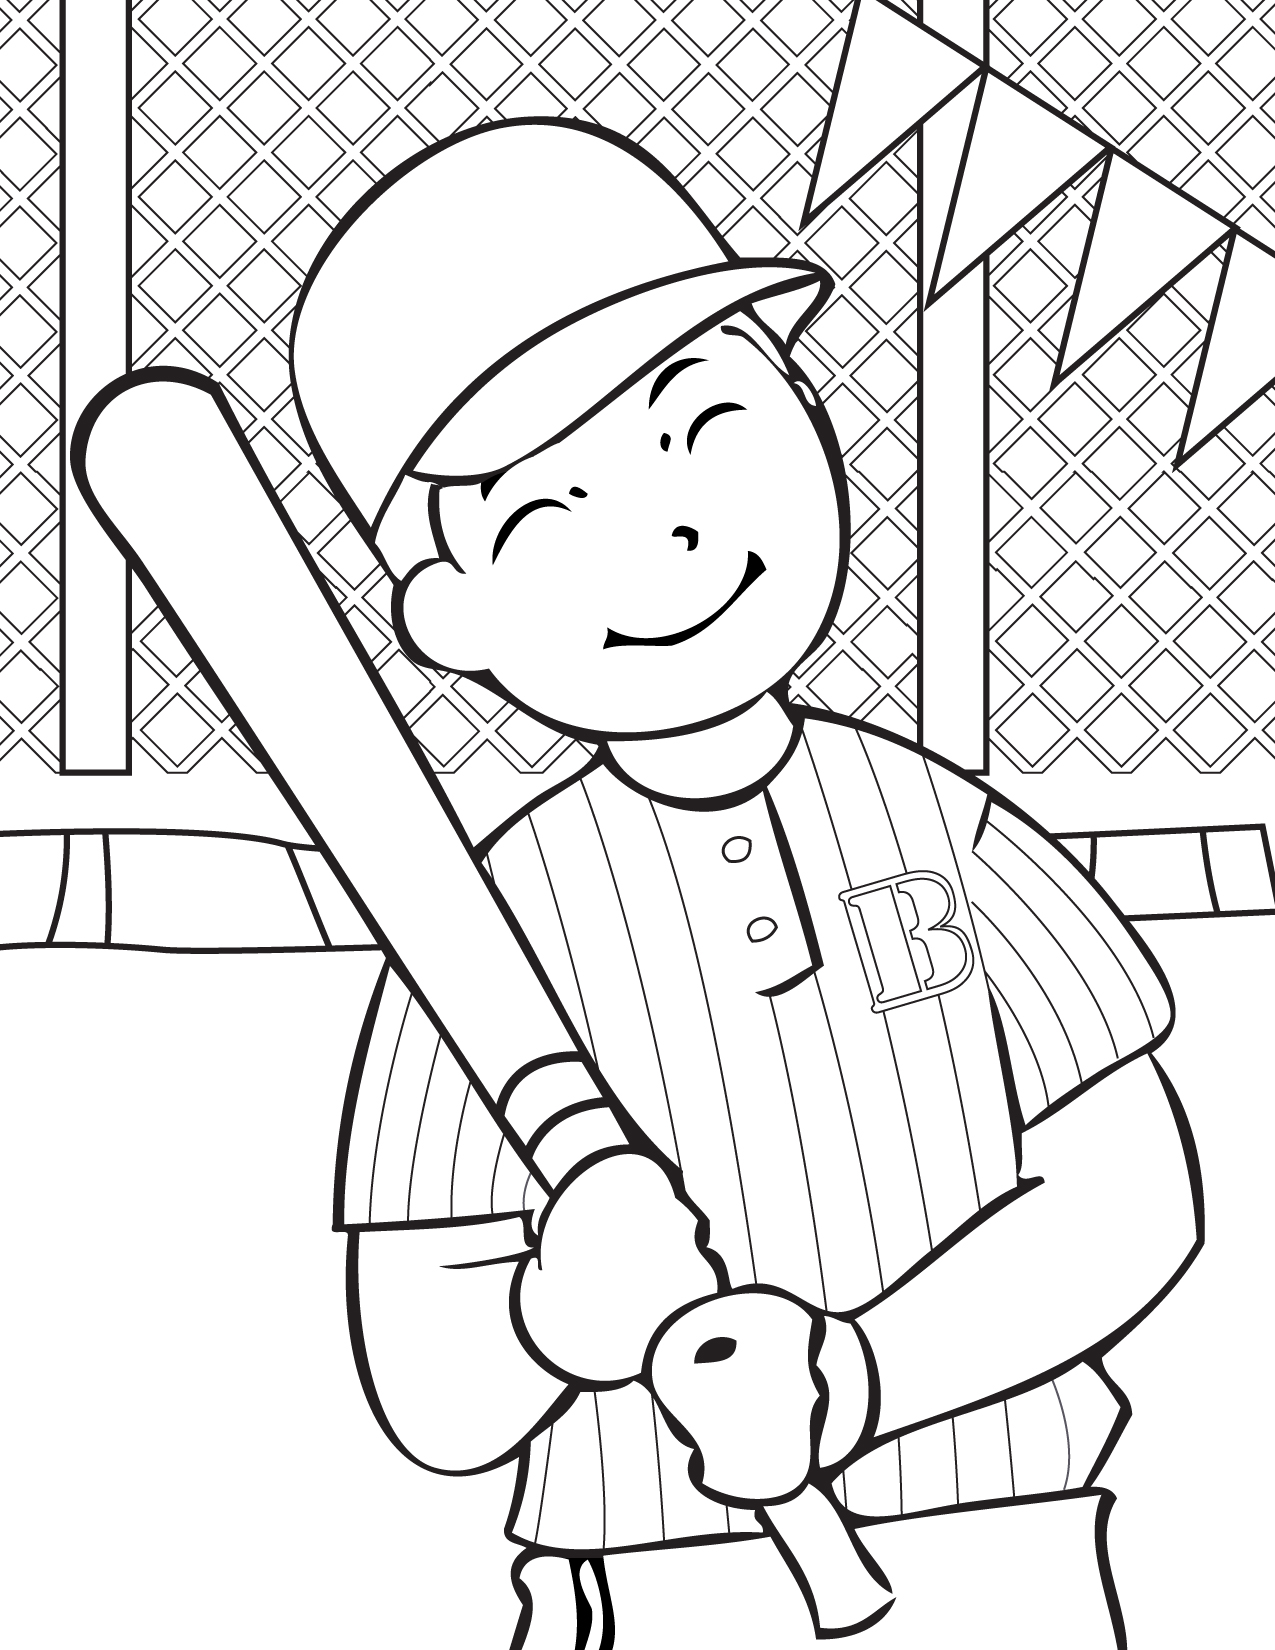 1275x1650 Fresh Printable Sports Coloring Pages For Kids Free Printable